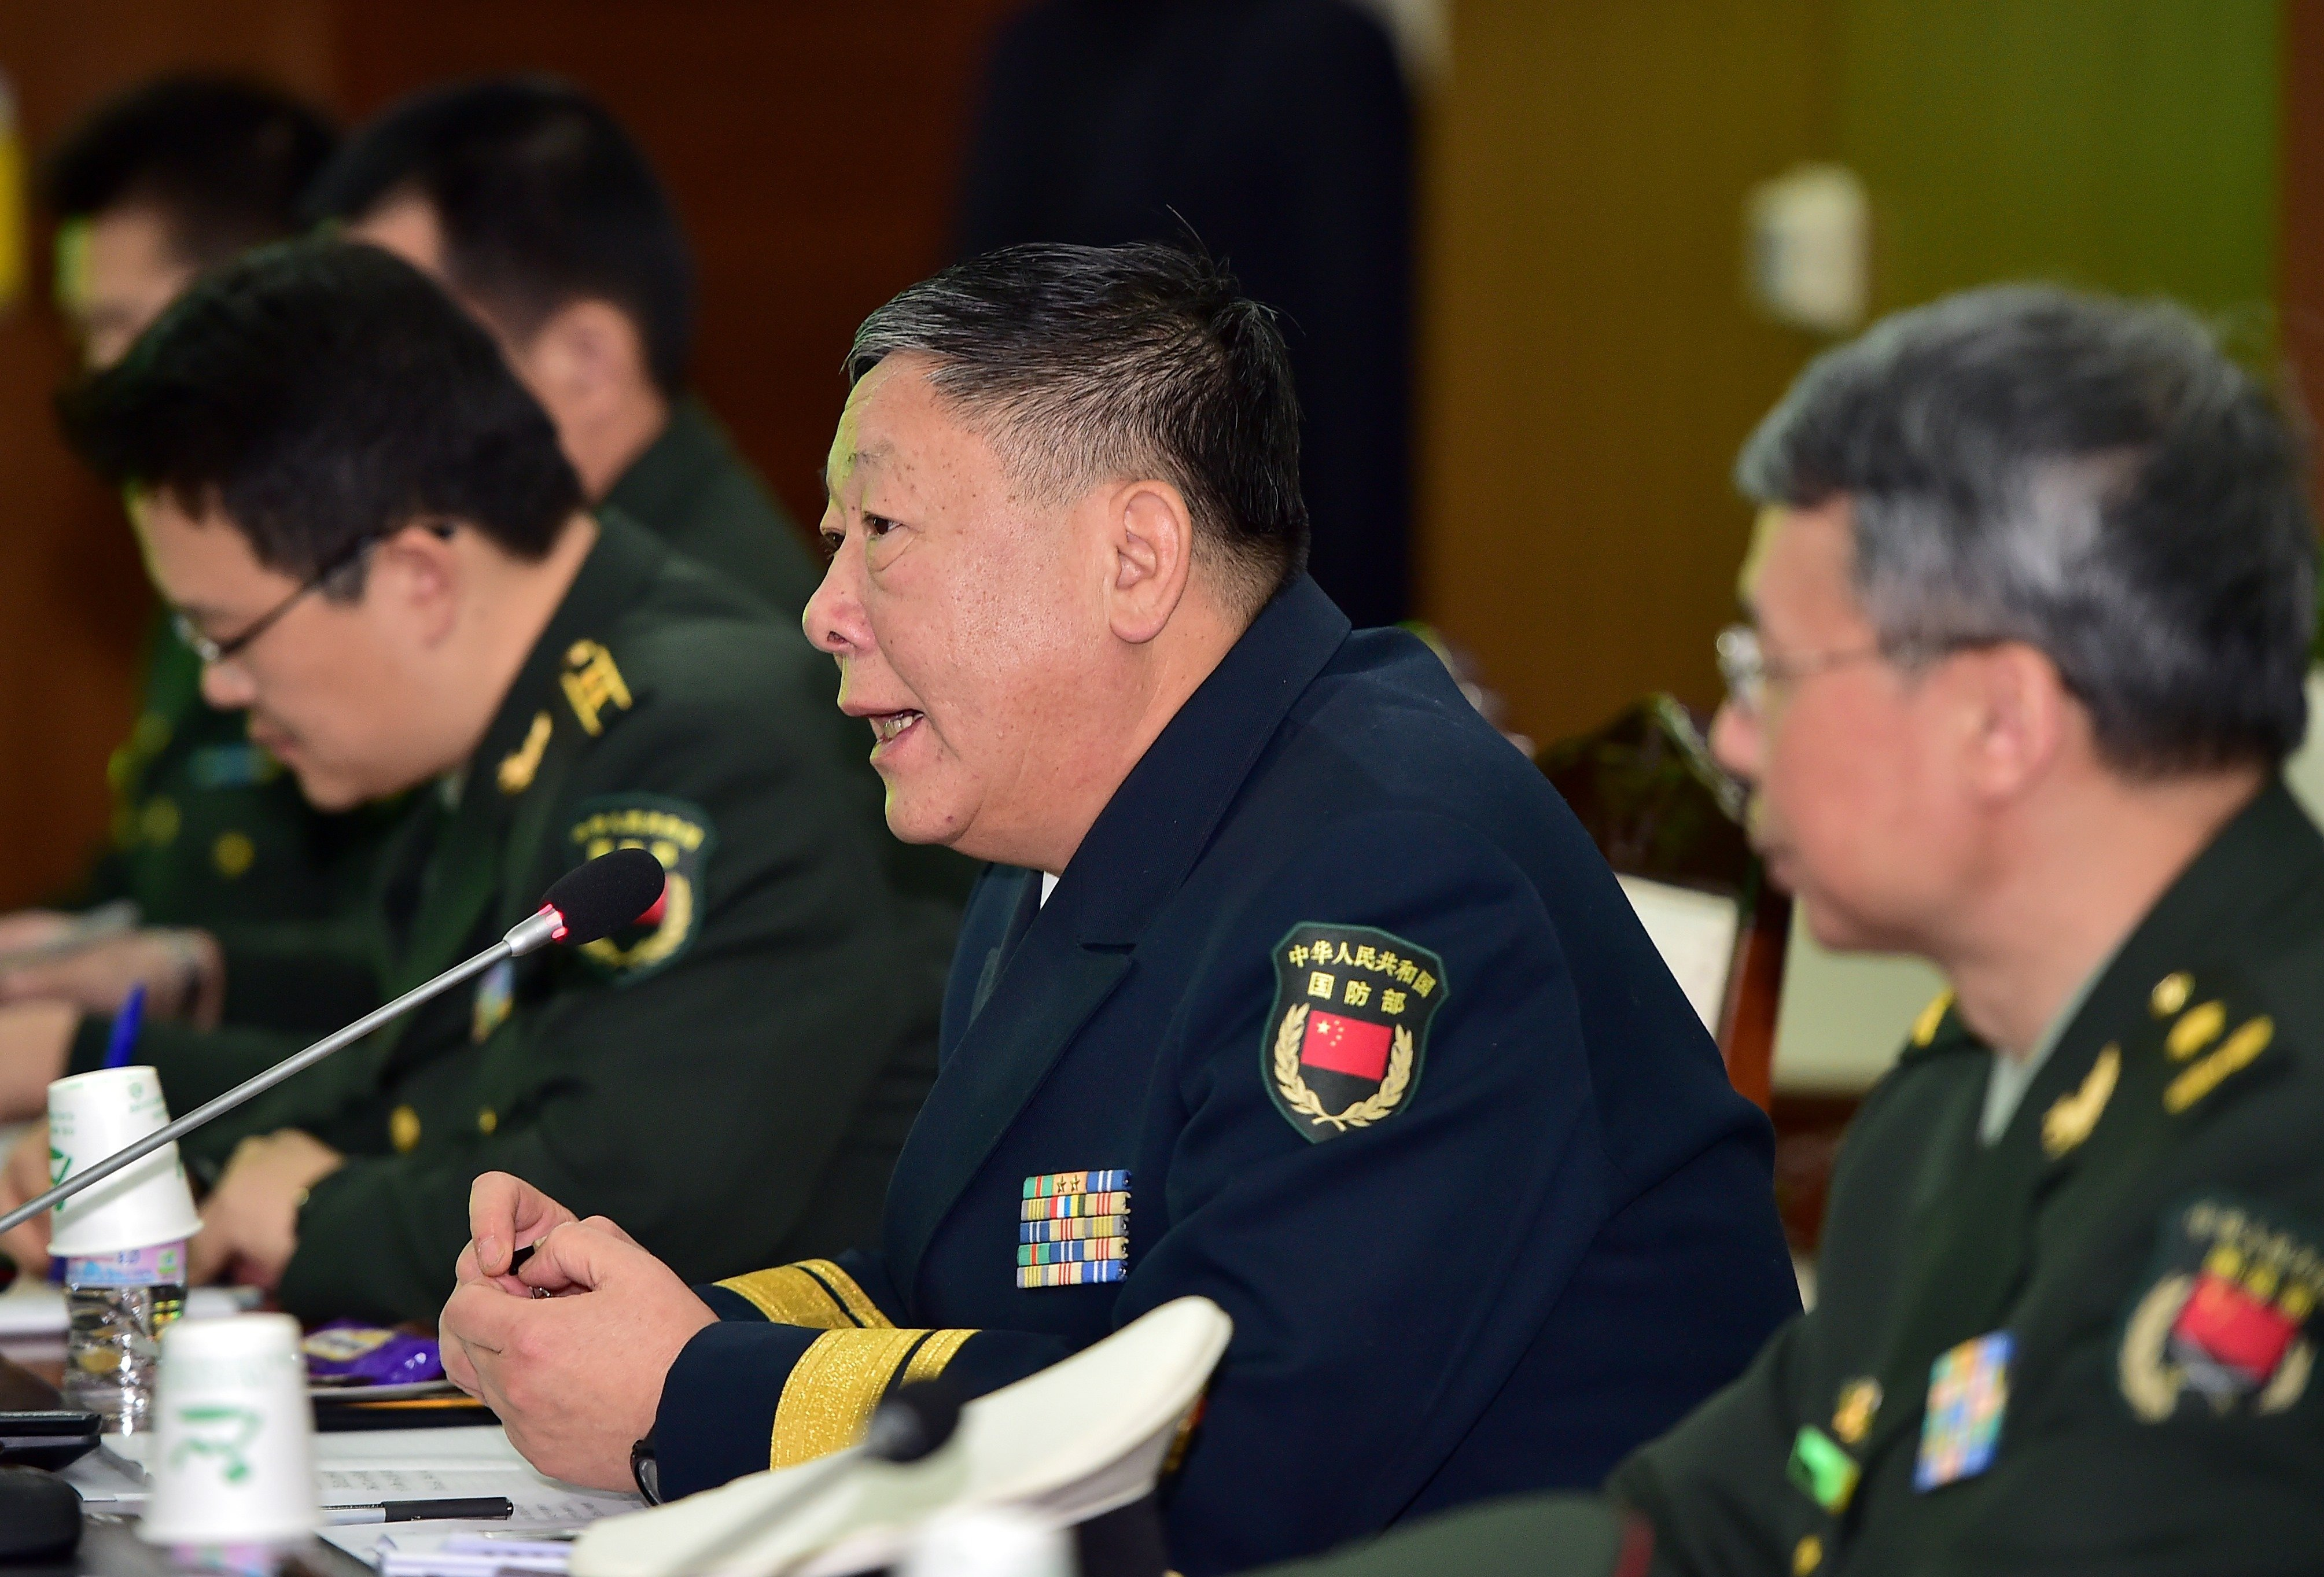 Rear Admiral Guan Youfei (C), director of the newly created Foreign Affairs Office of China's National Defence Ministry, speaks during annual working-level talks with South Korea at the Defence Ministry in Seoul on January 15, 2016. The official visited Syria in mid-August, to the chagrin of Western political analysts.